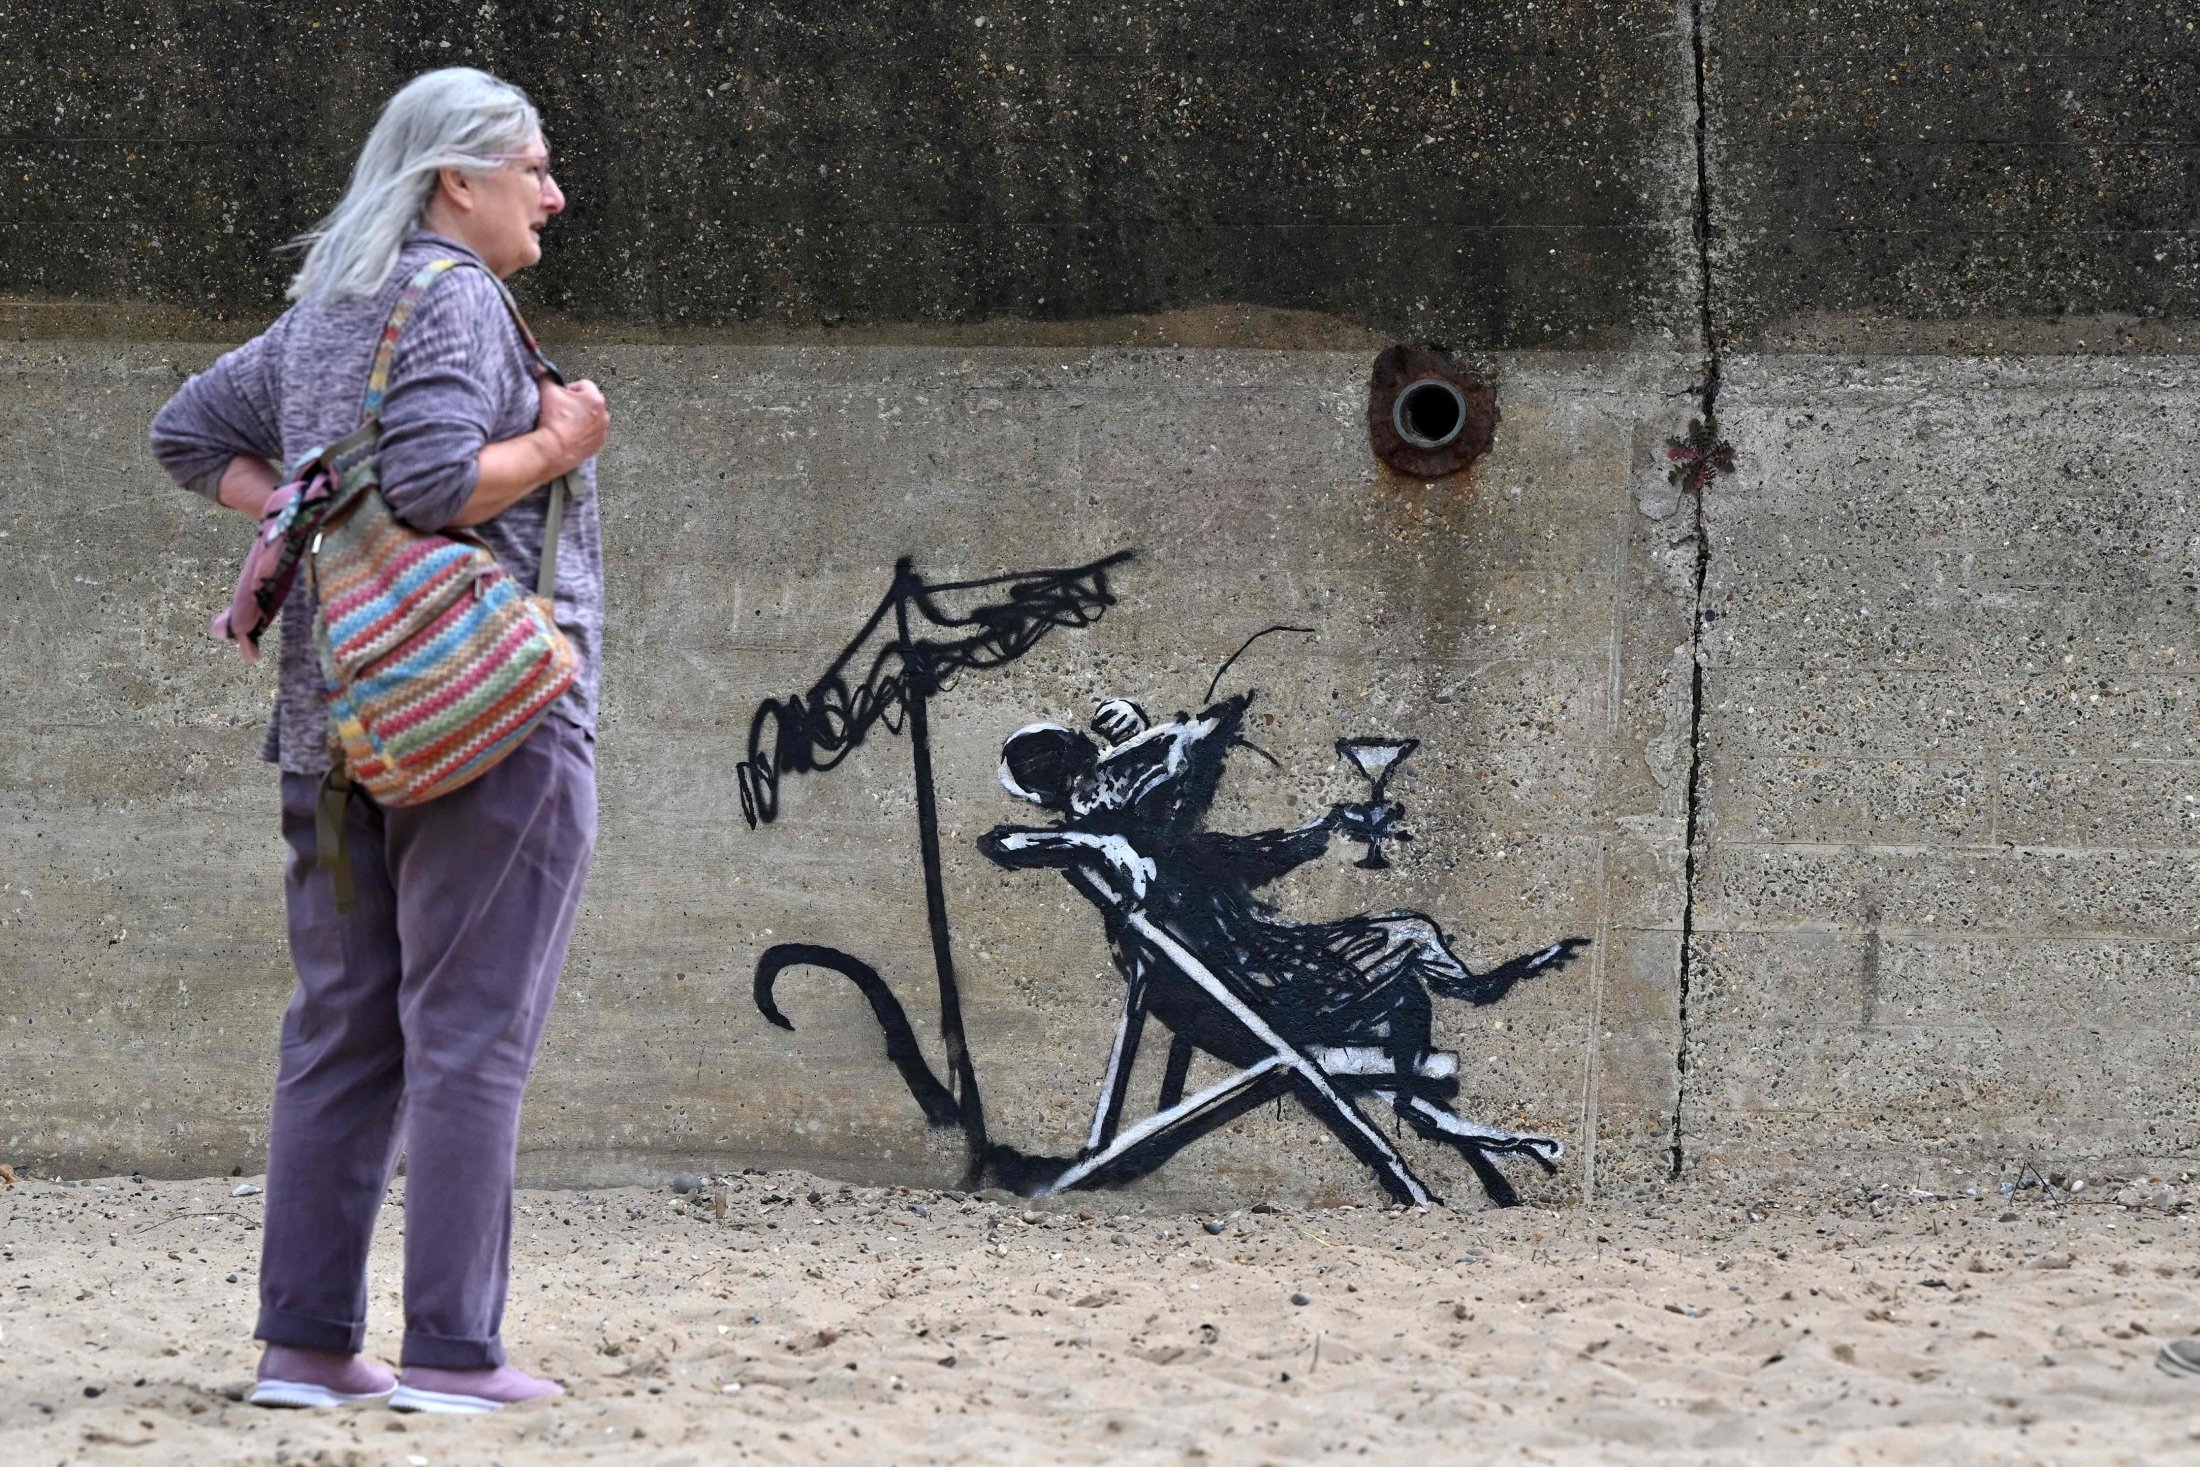 A woman stands beside a graffiti artwork of a rat drinking a cocktail, which bears the hallmarks of street artist Banksy, on a wall at North Beach in Lowestoft, U.K., Aug. 8, 2021. (AFP Photo)